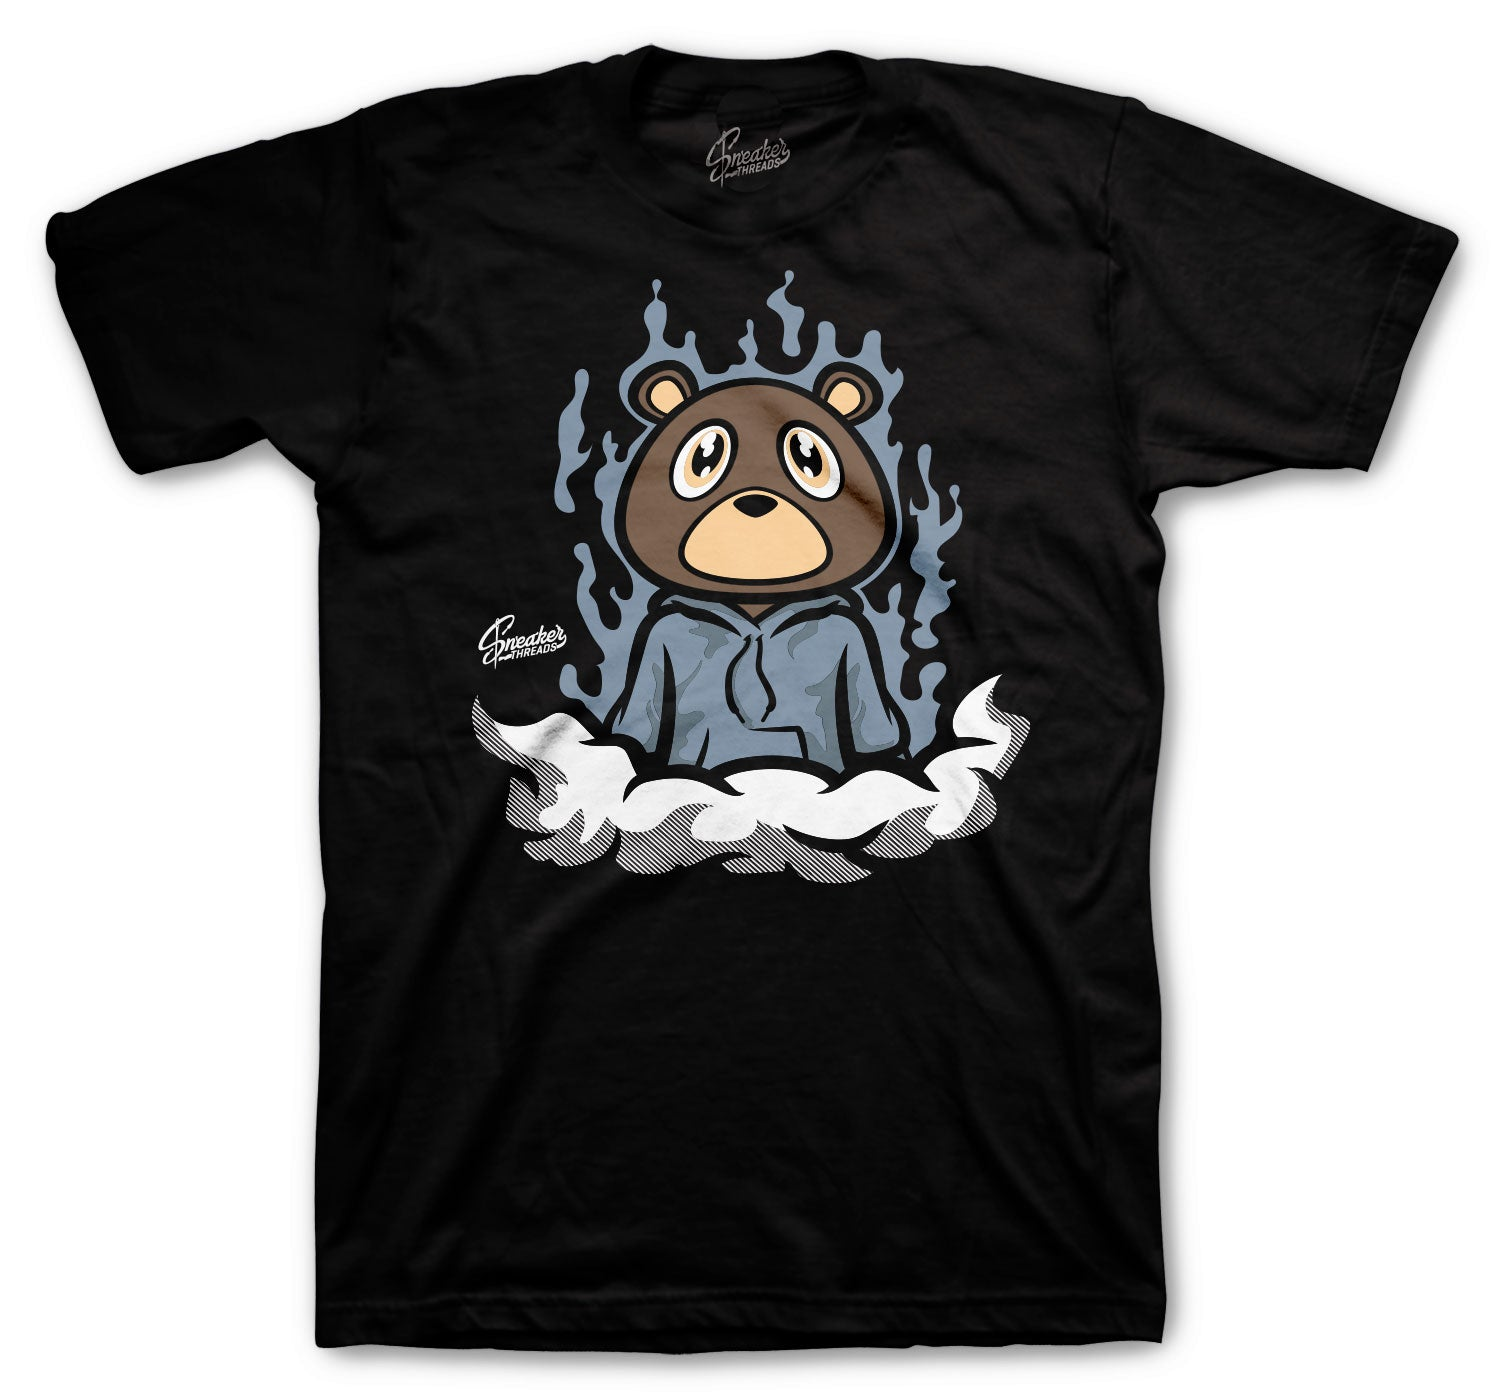 Yeezy Ash Blue 350 Shirt - Fly Bear - Black